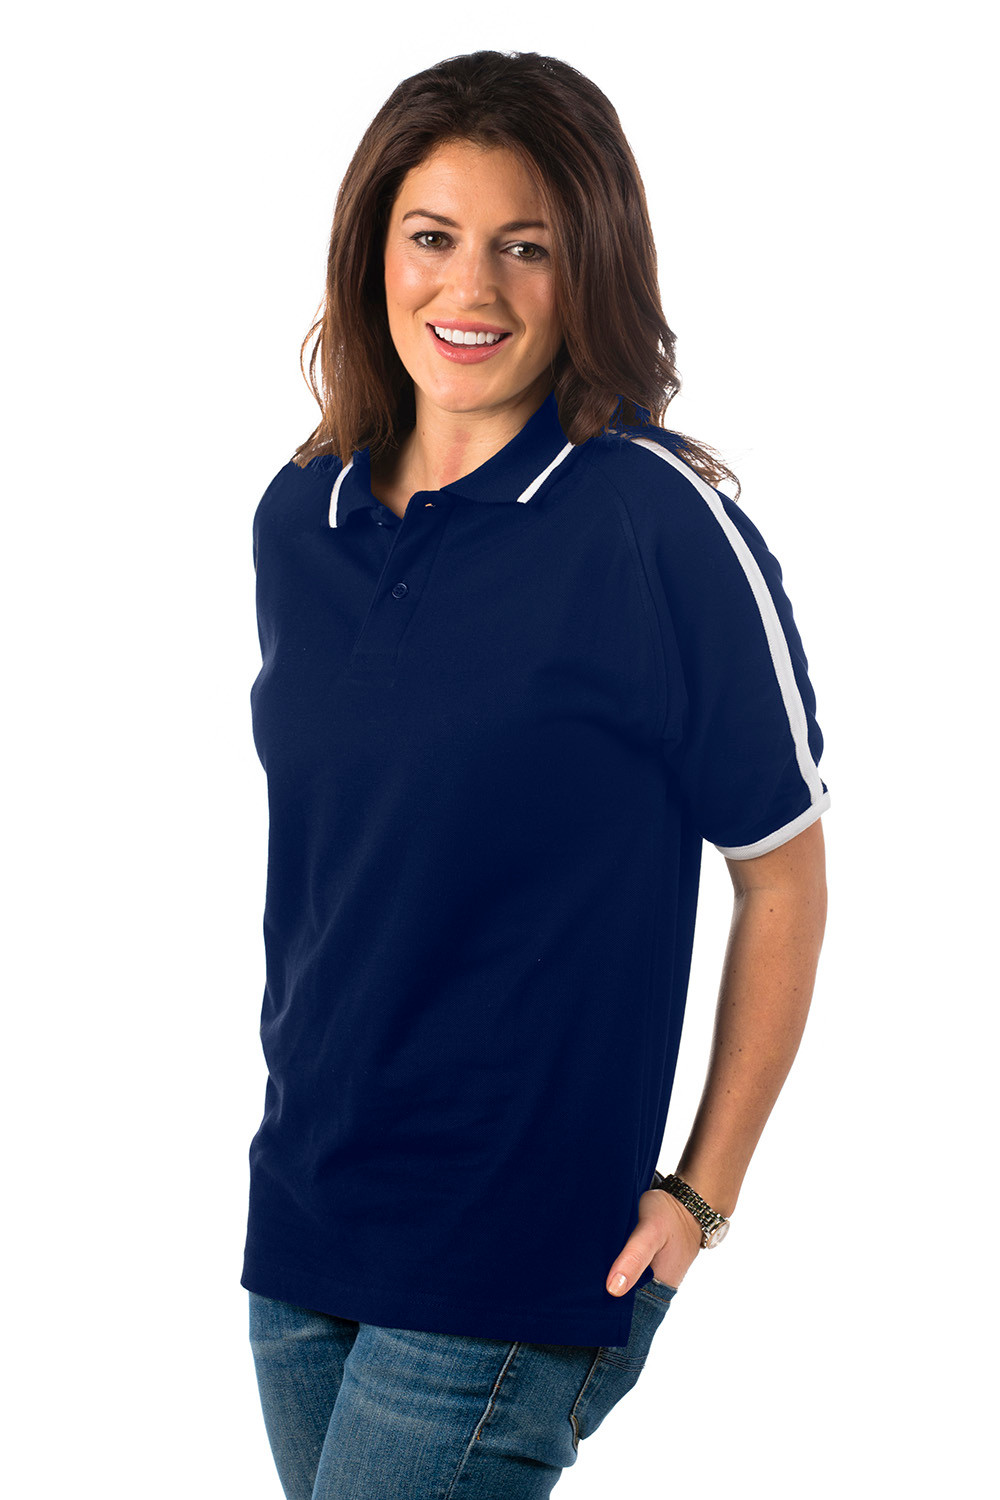 Navy Blue/White Polo Shirt